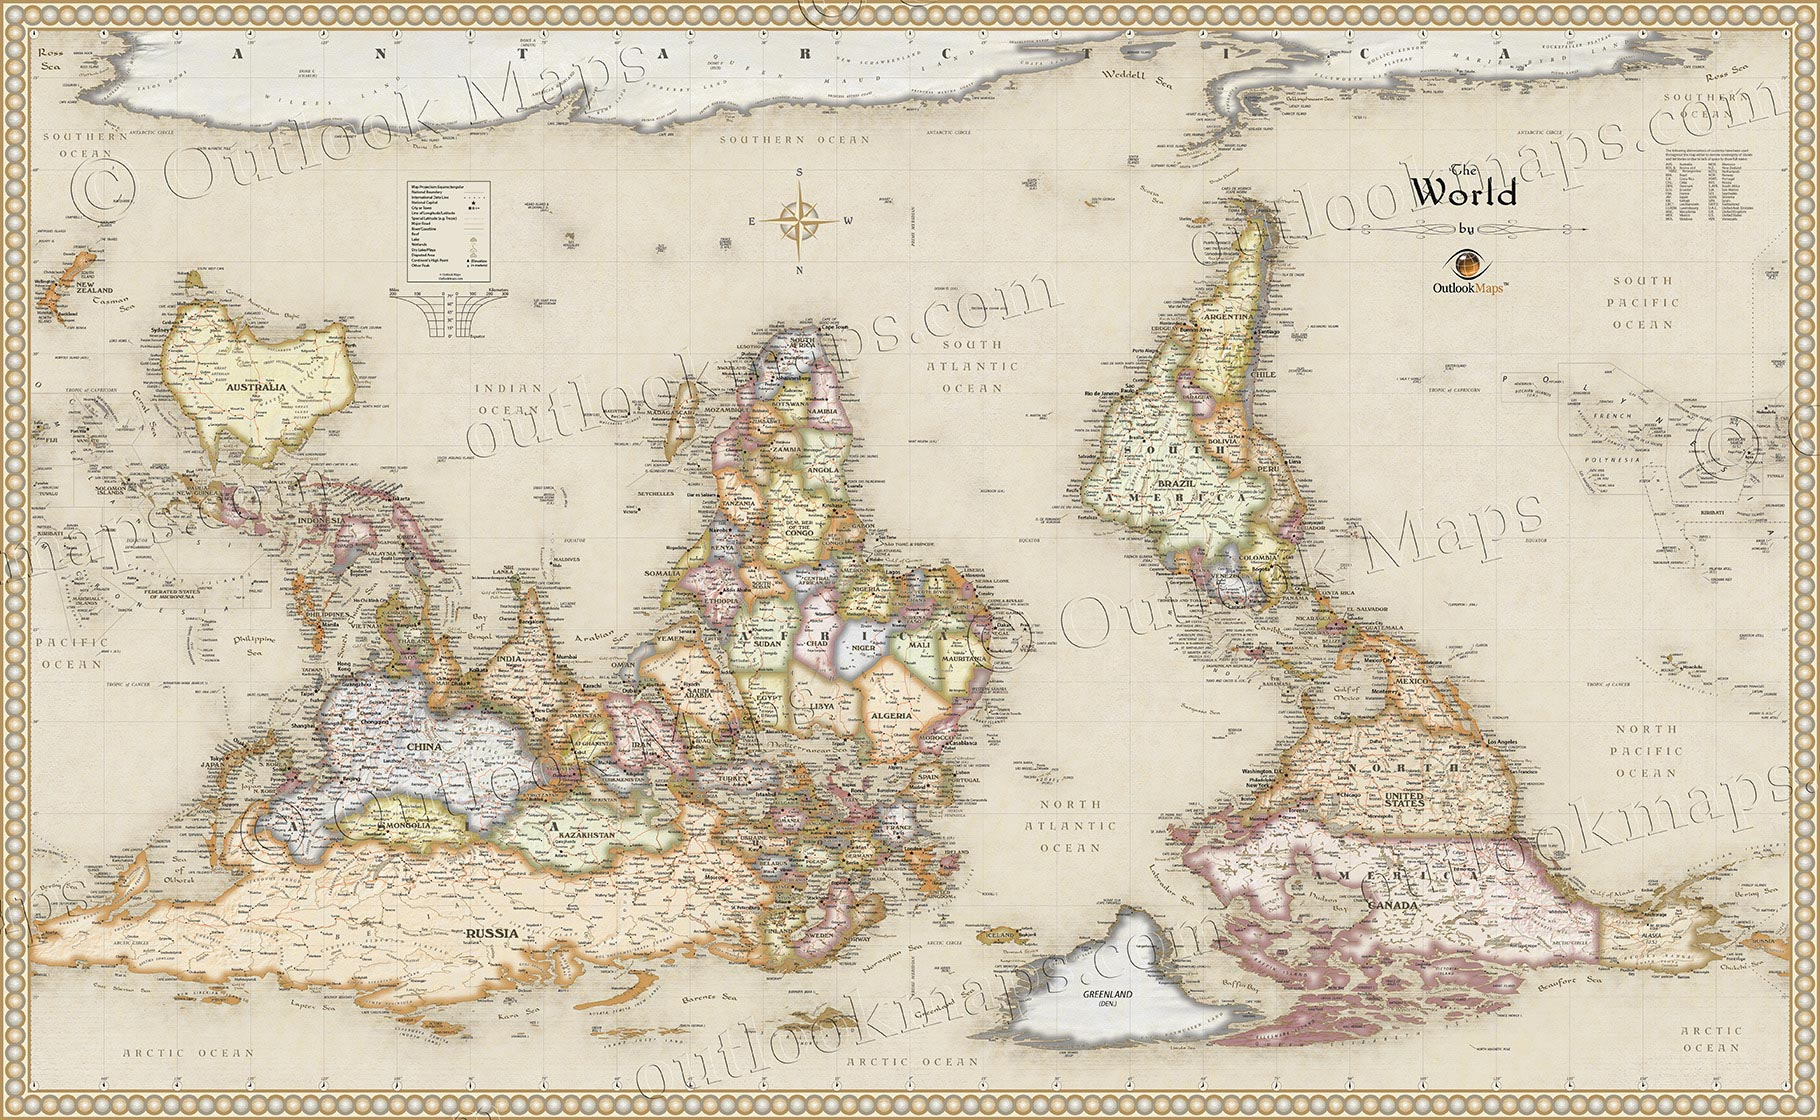 World upside down antique style map antique upside down map of the world gumiabroncs Image collections